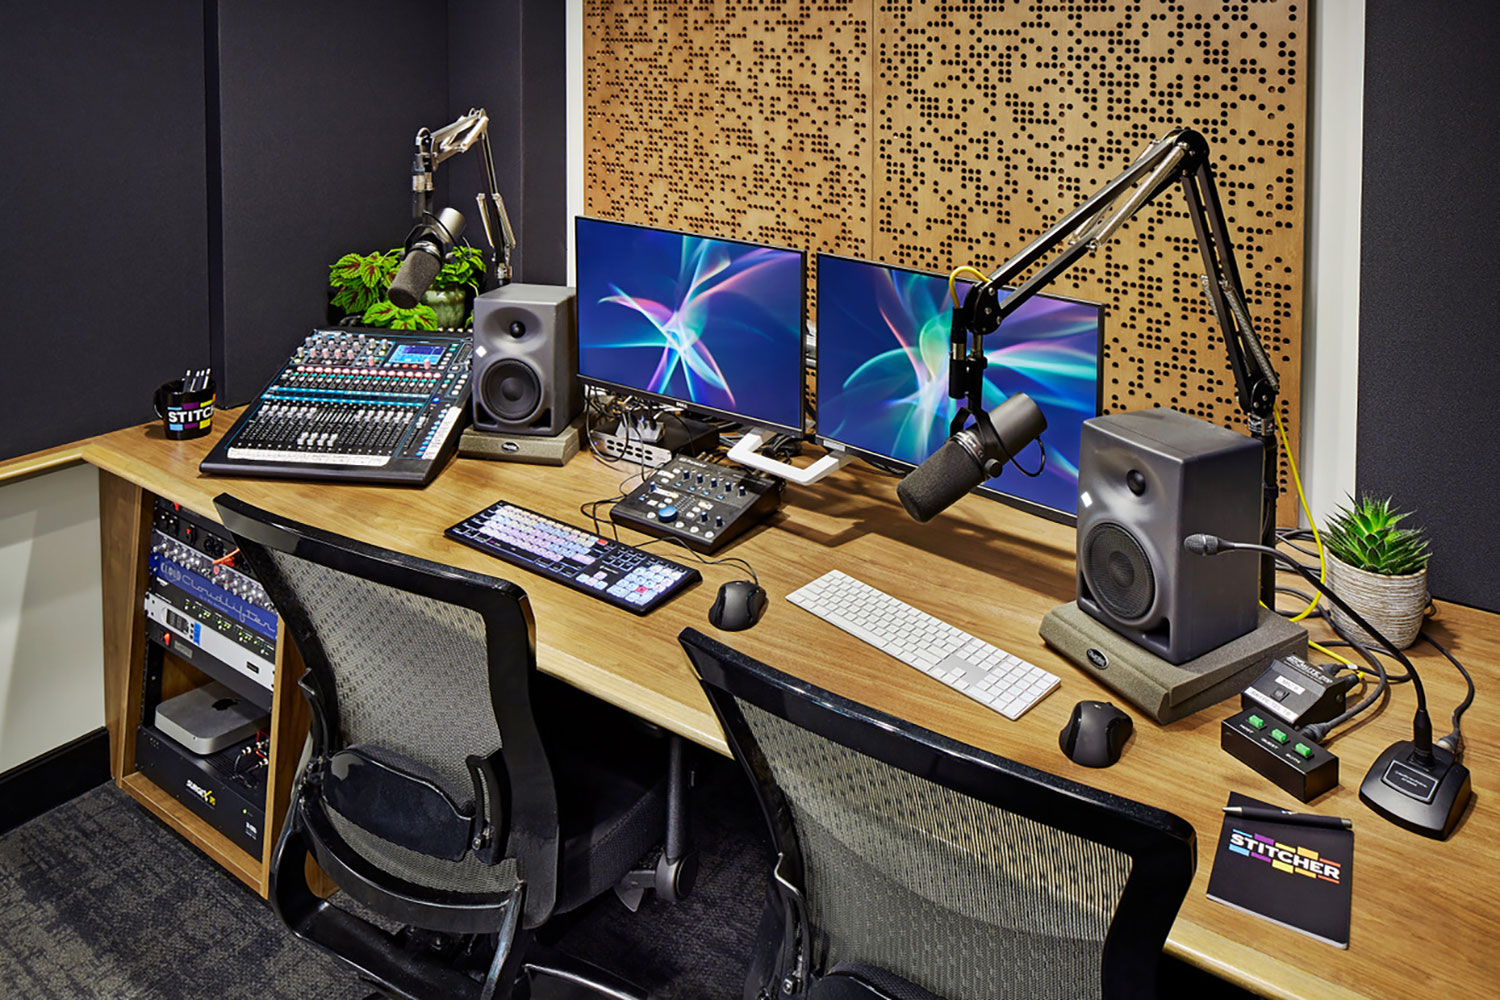 Stitcher is among the earliest, the most creative and most successful podcast creator companies. Their team made a move to build out larger production facilities in both its NY and LA offices and they chose WSDG to design their new podcast studios facilities. Edit A 2.